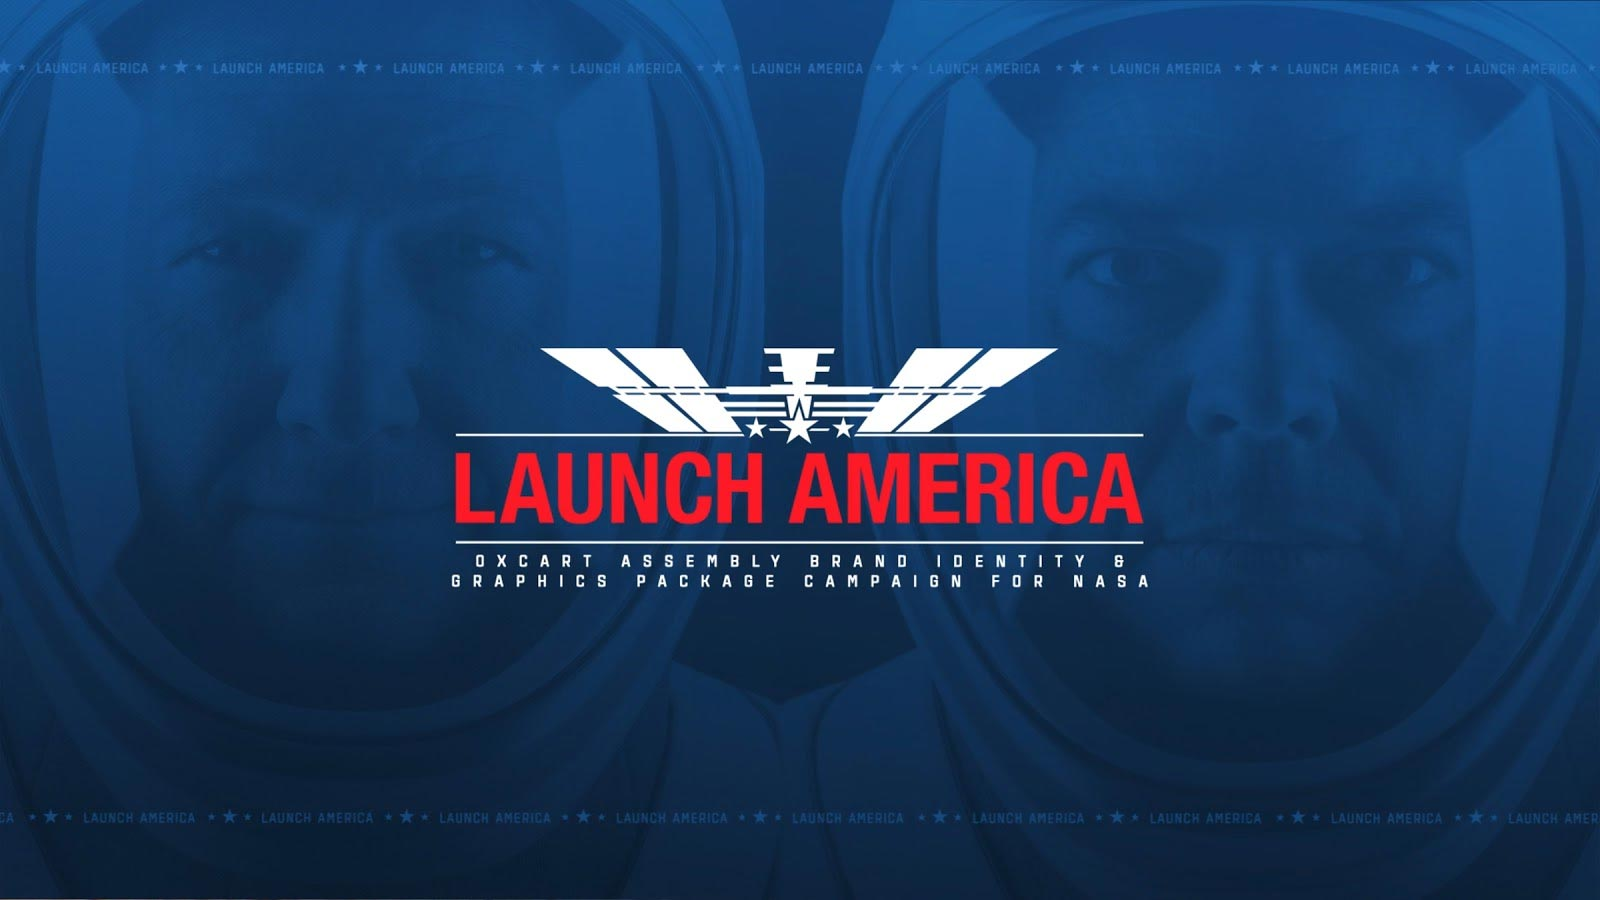 Launch America: how the NASA SpaceX campaign was created